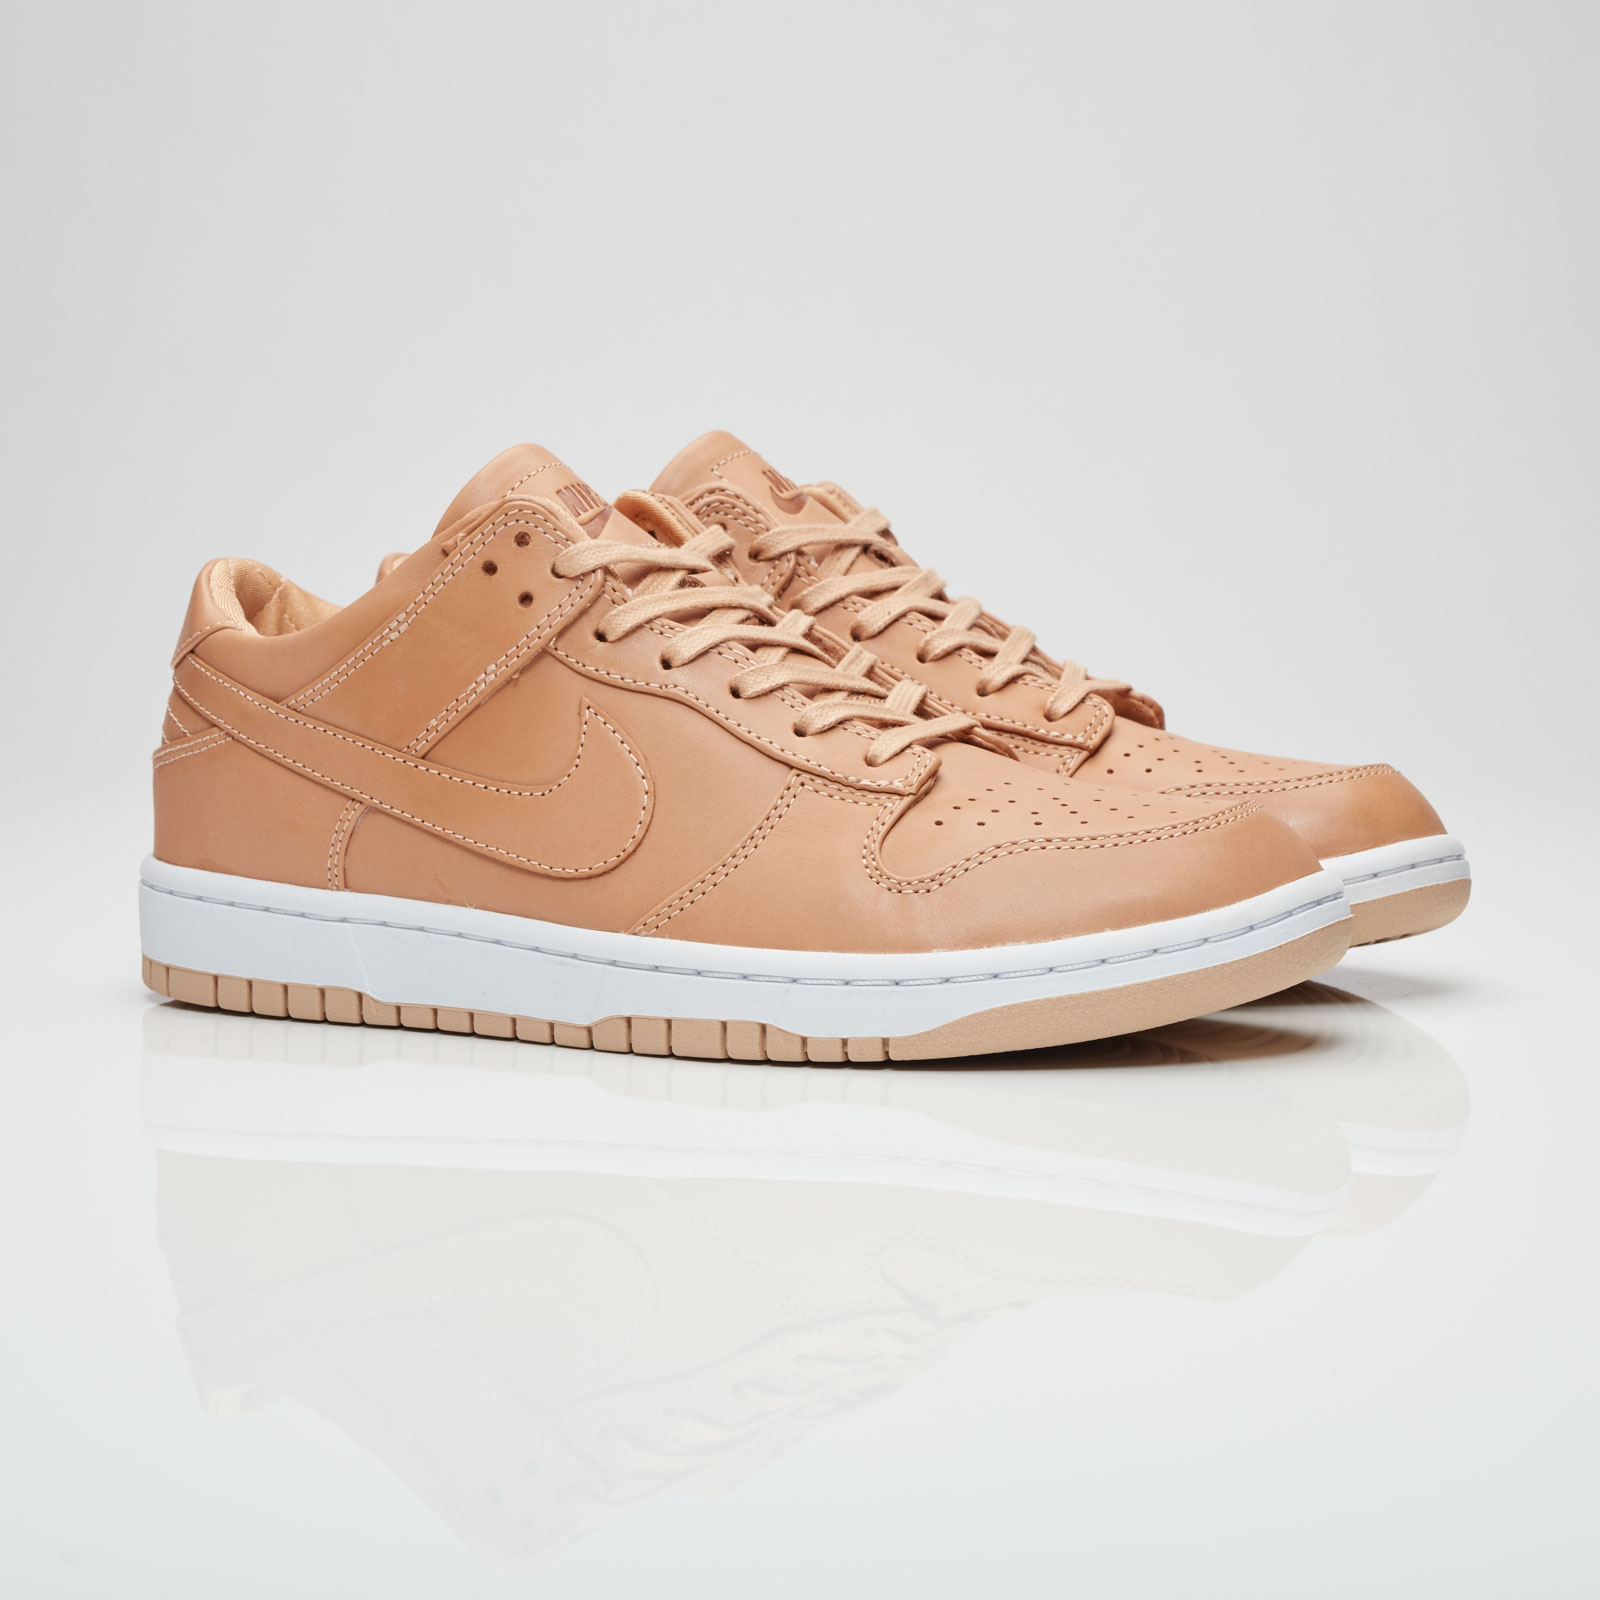 new product f7eb3 a7ef8 NikeLab Dunk Lux Low